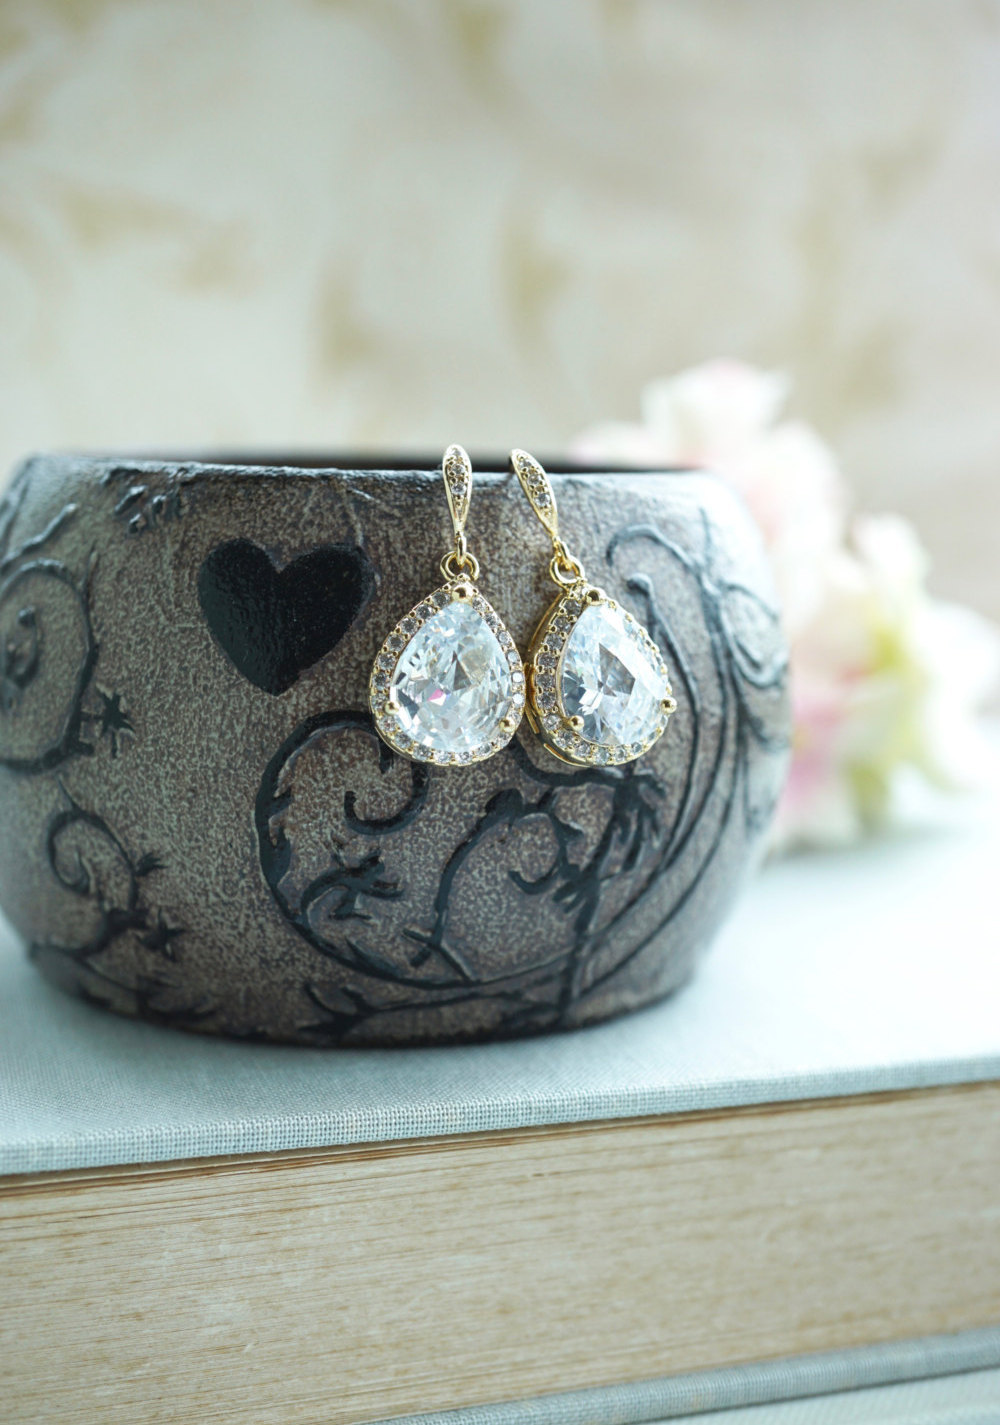 Giveaway: Win free bridal earrings by Marolsha Bridal! Exclusively at EmmalineBride.com